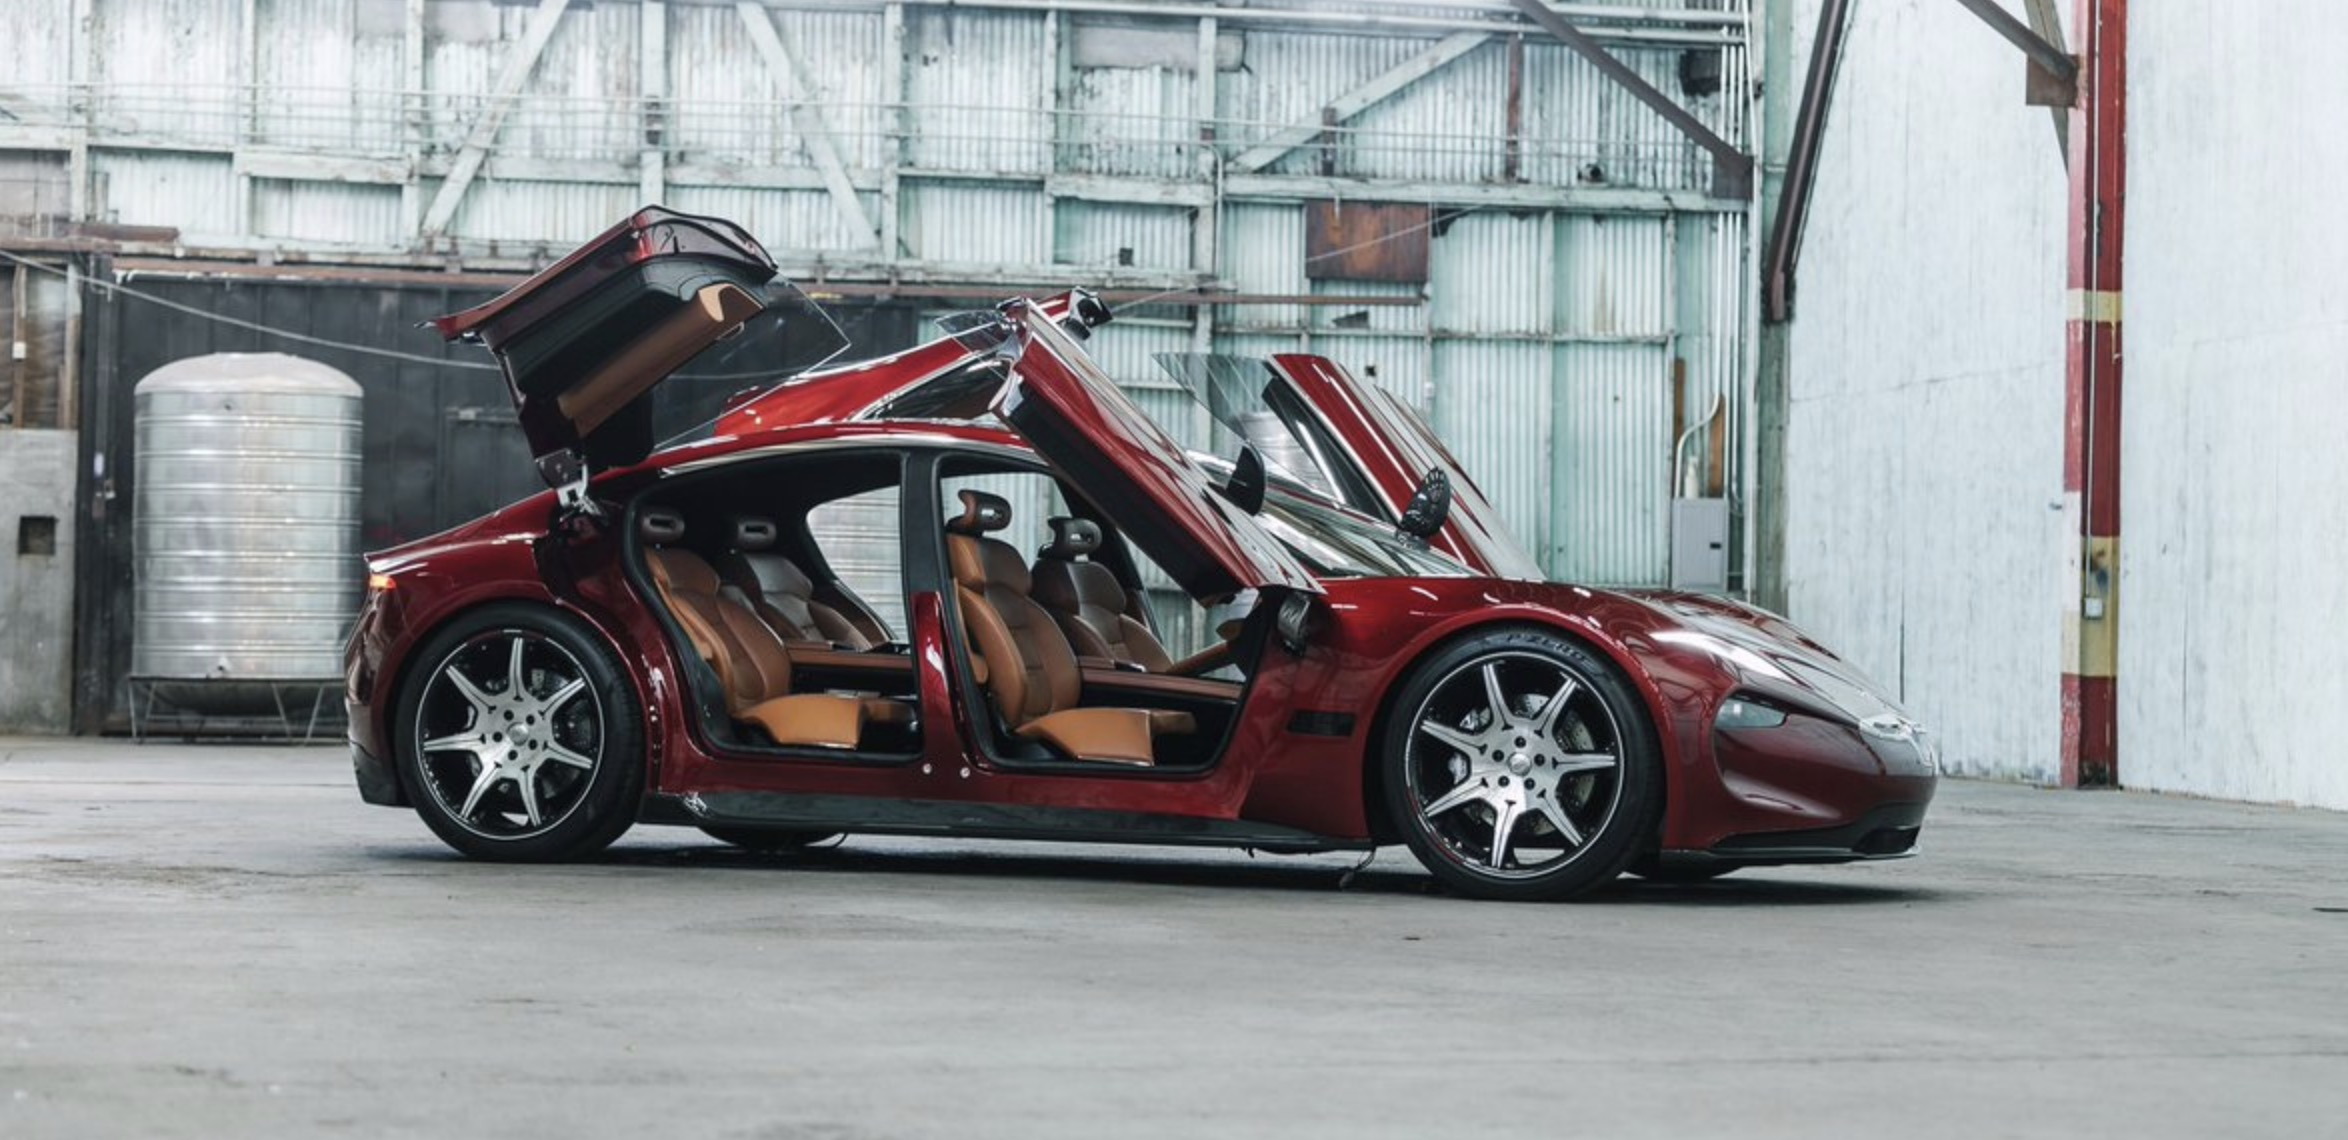 Henrik Fisker unveils new images of his electric car ahead of next week's unveiling